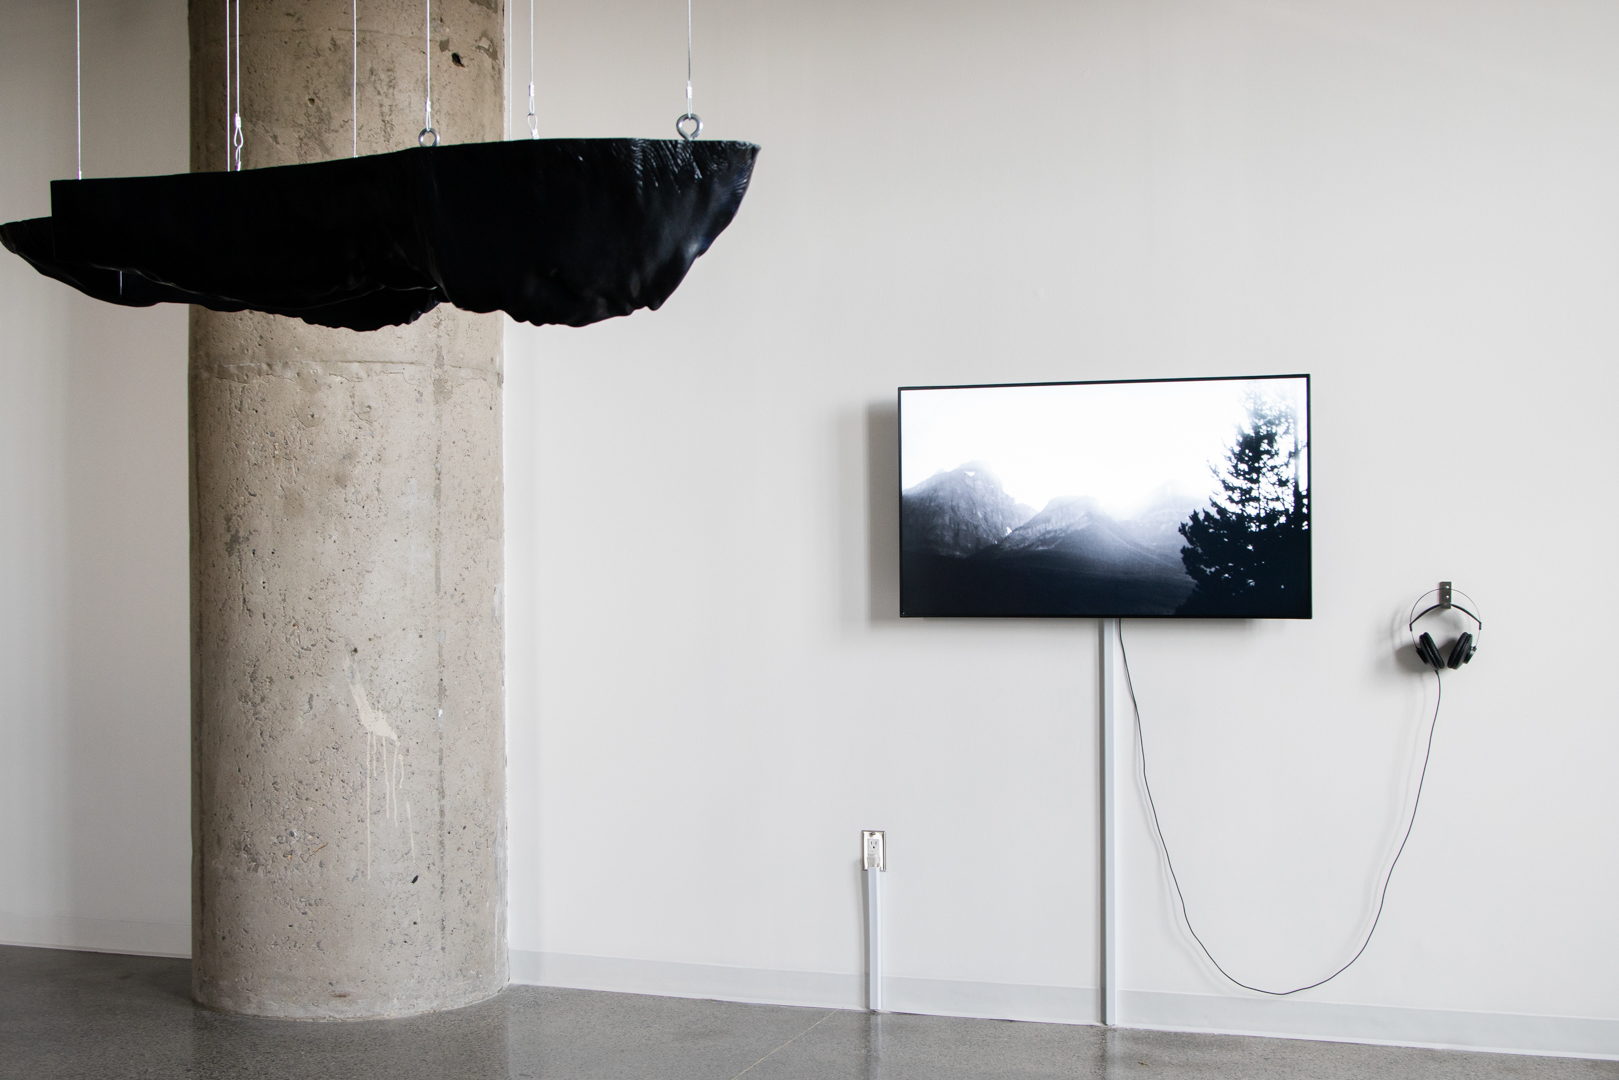 Closer view of the black three-dimensional sculpture by Polymetis. Its top surface is straight and smooth, but in contrast the rest of the sculpture is organic and reminiscent of landscape. Behind it, the black-and-white video of work by Kolcze depicts mountains and trees.